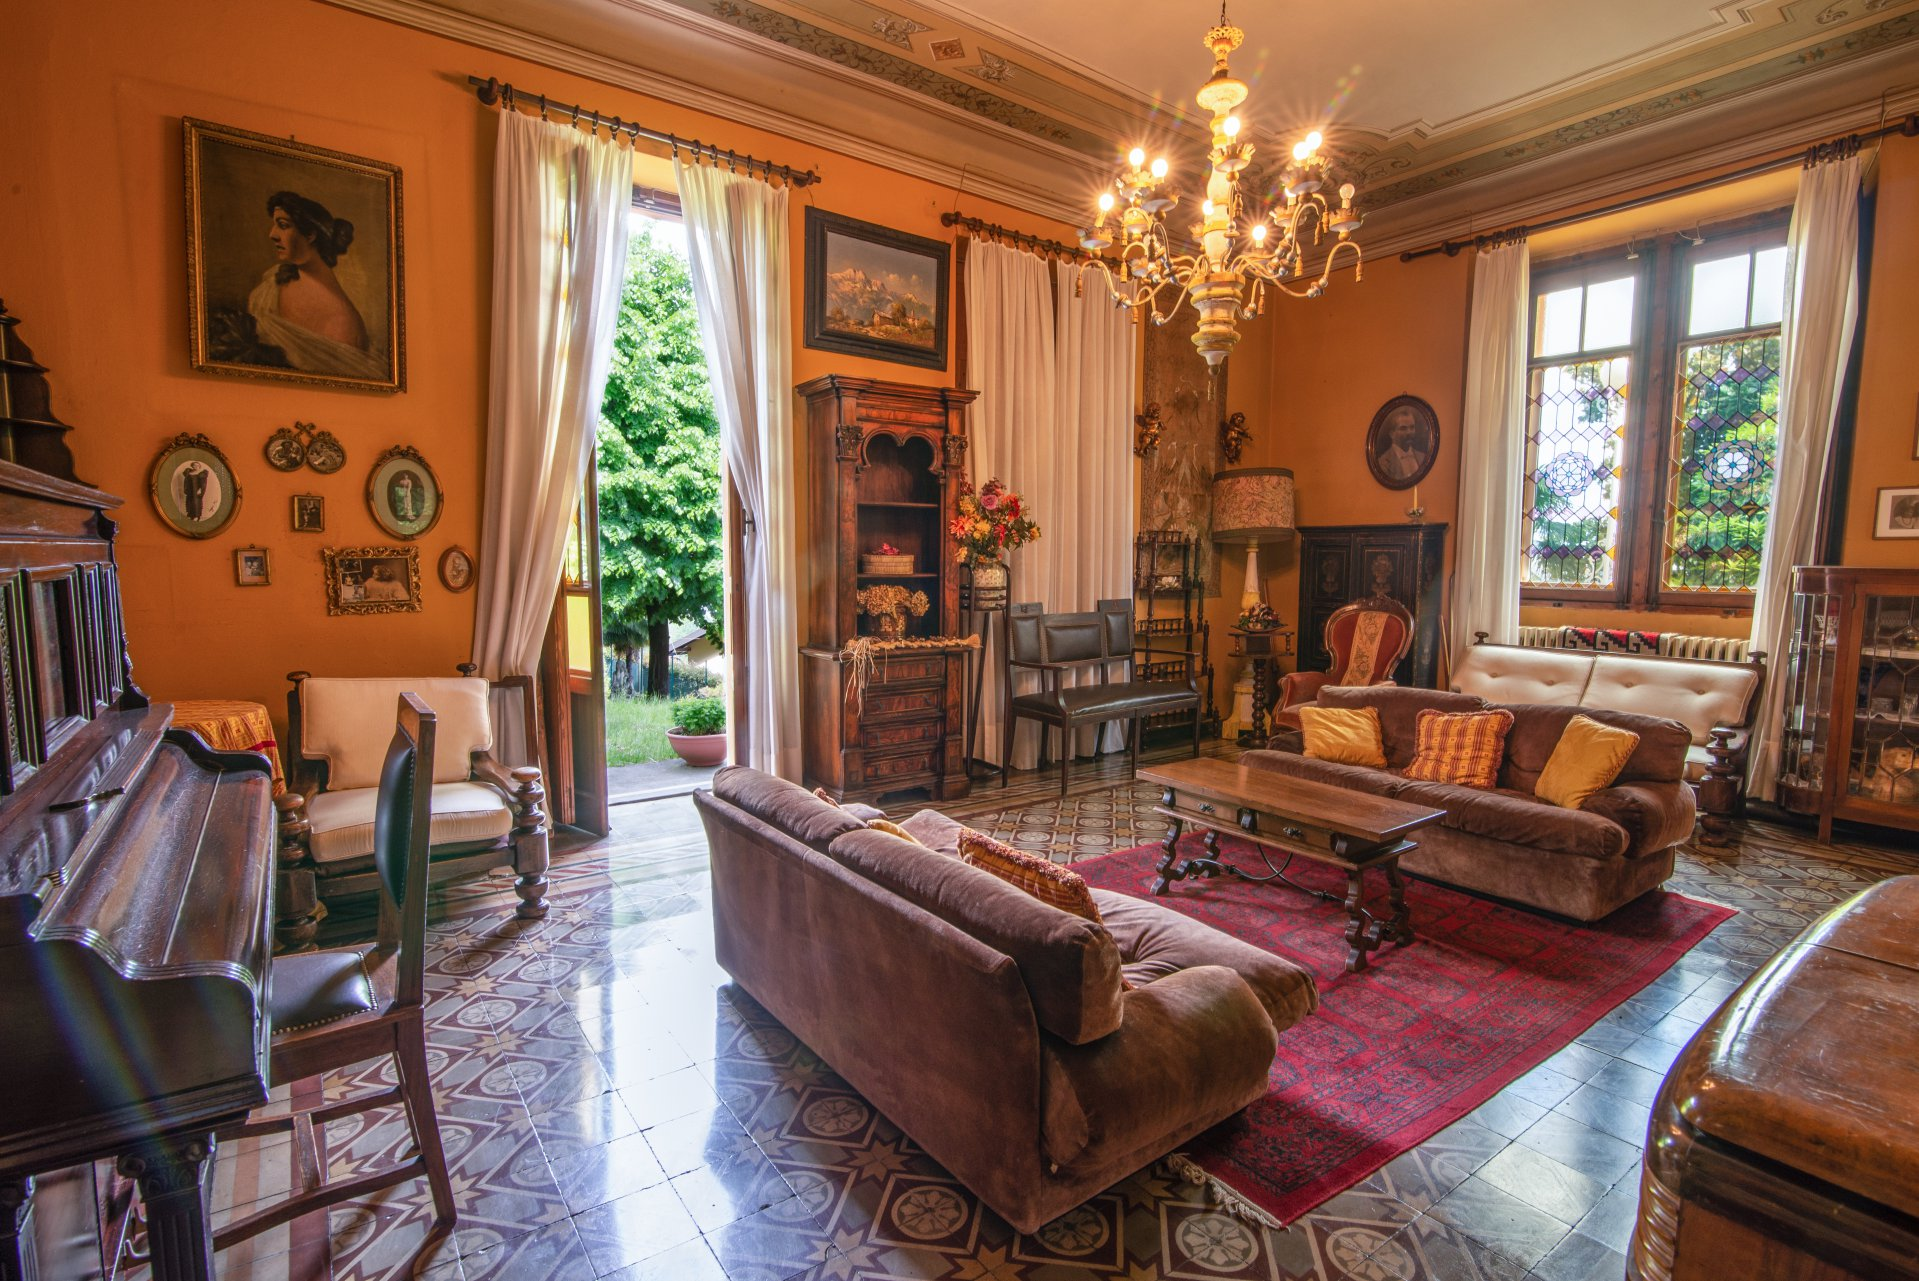 Historic property for sale in Lago Maggiore - large living room